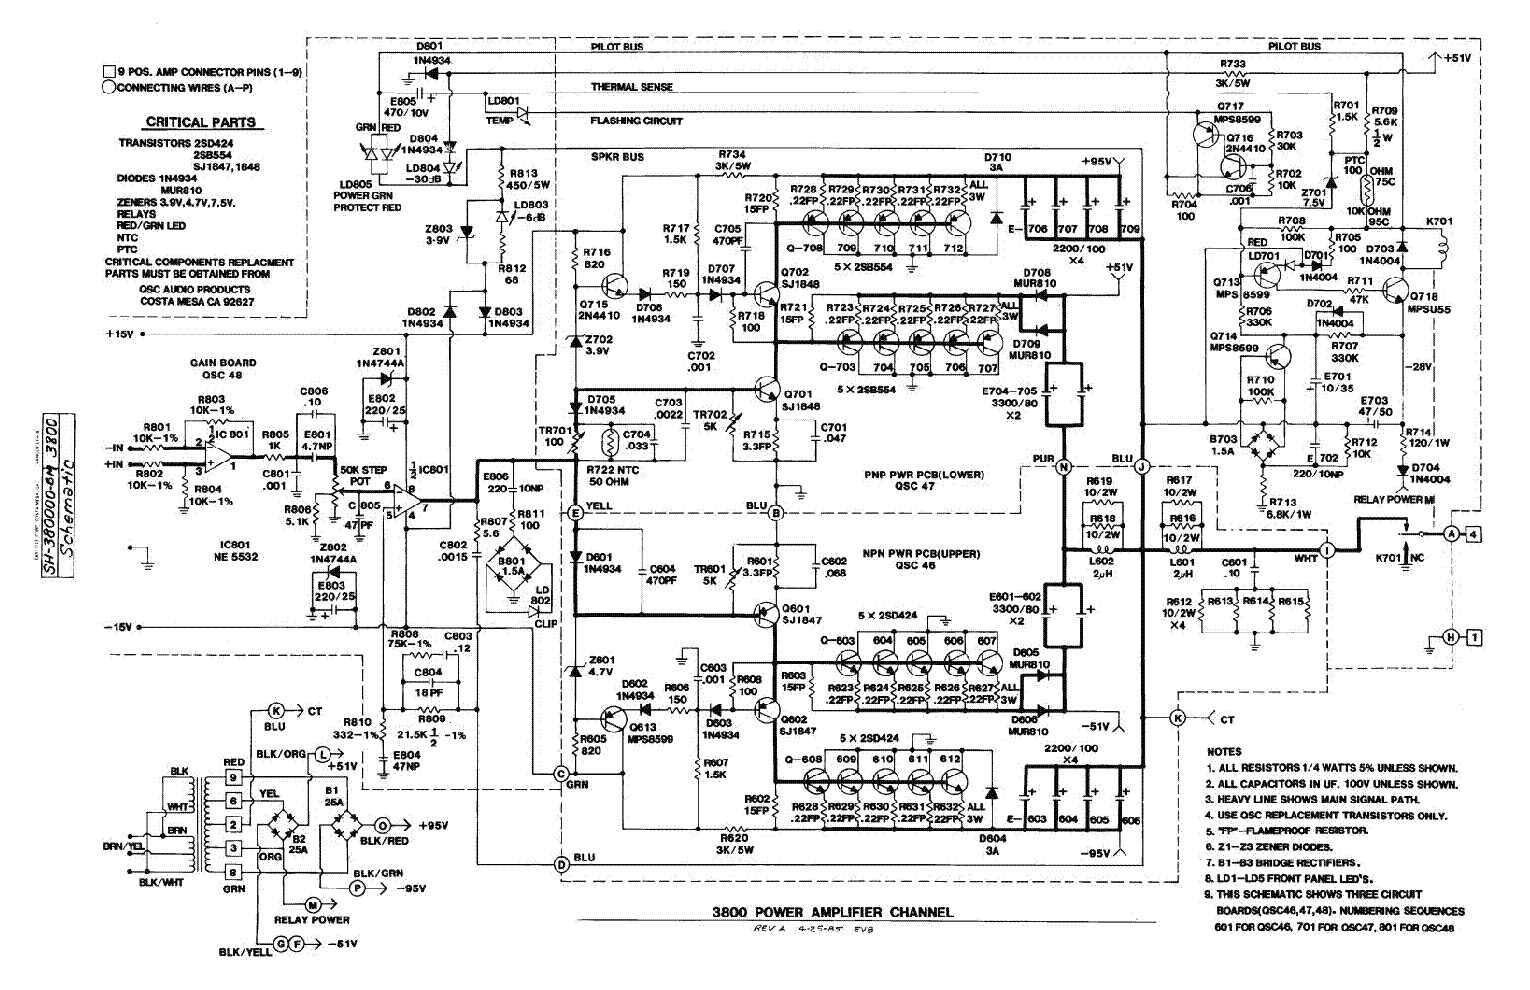 qsc 3800 service manual download  schematics  eeprom  repair info for electronics experts